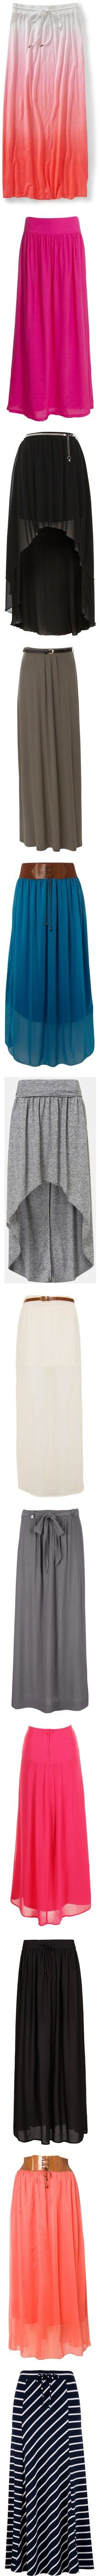 """Maxi skirts!"" by sinnersss on Polyvore"